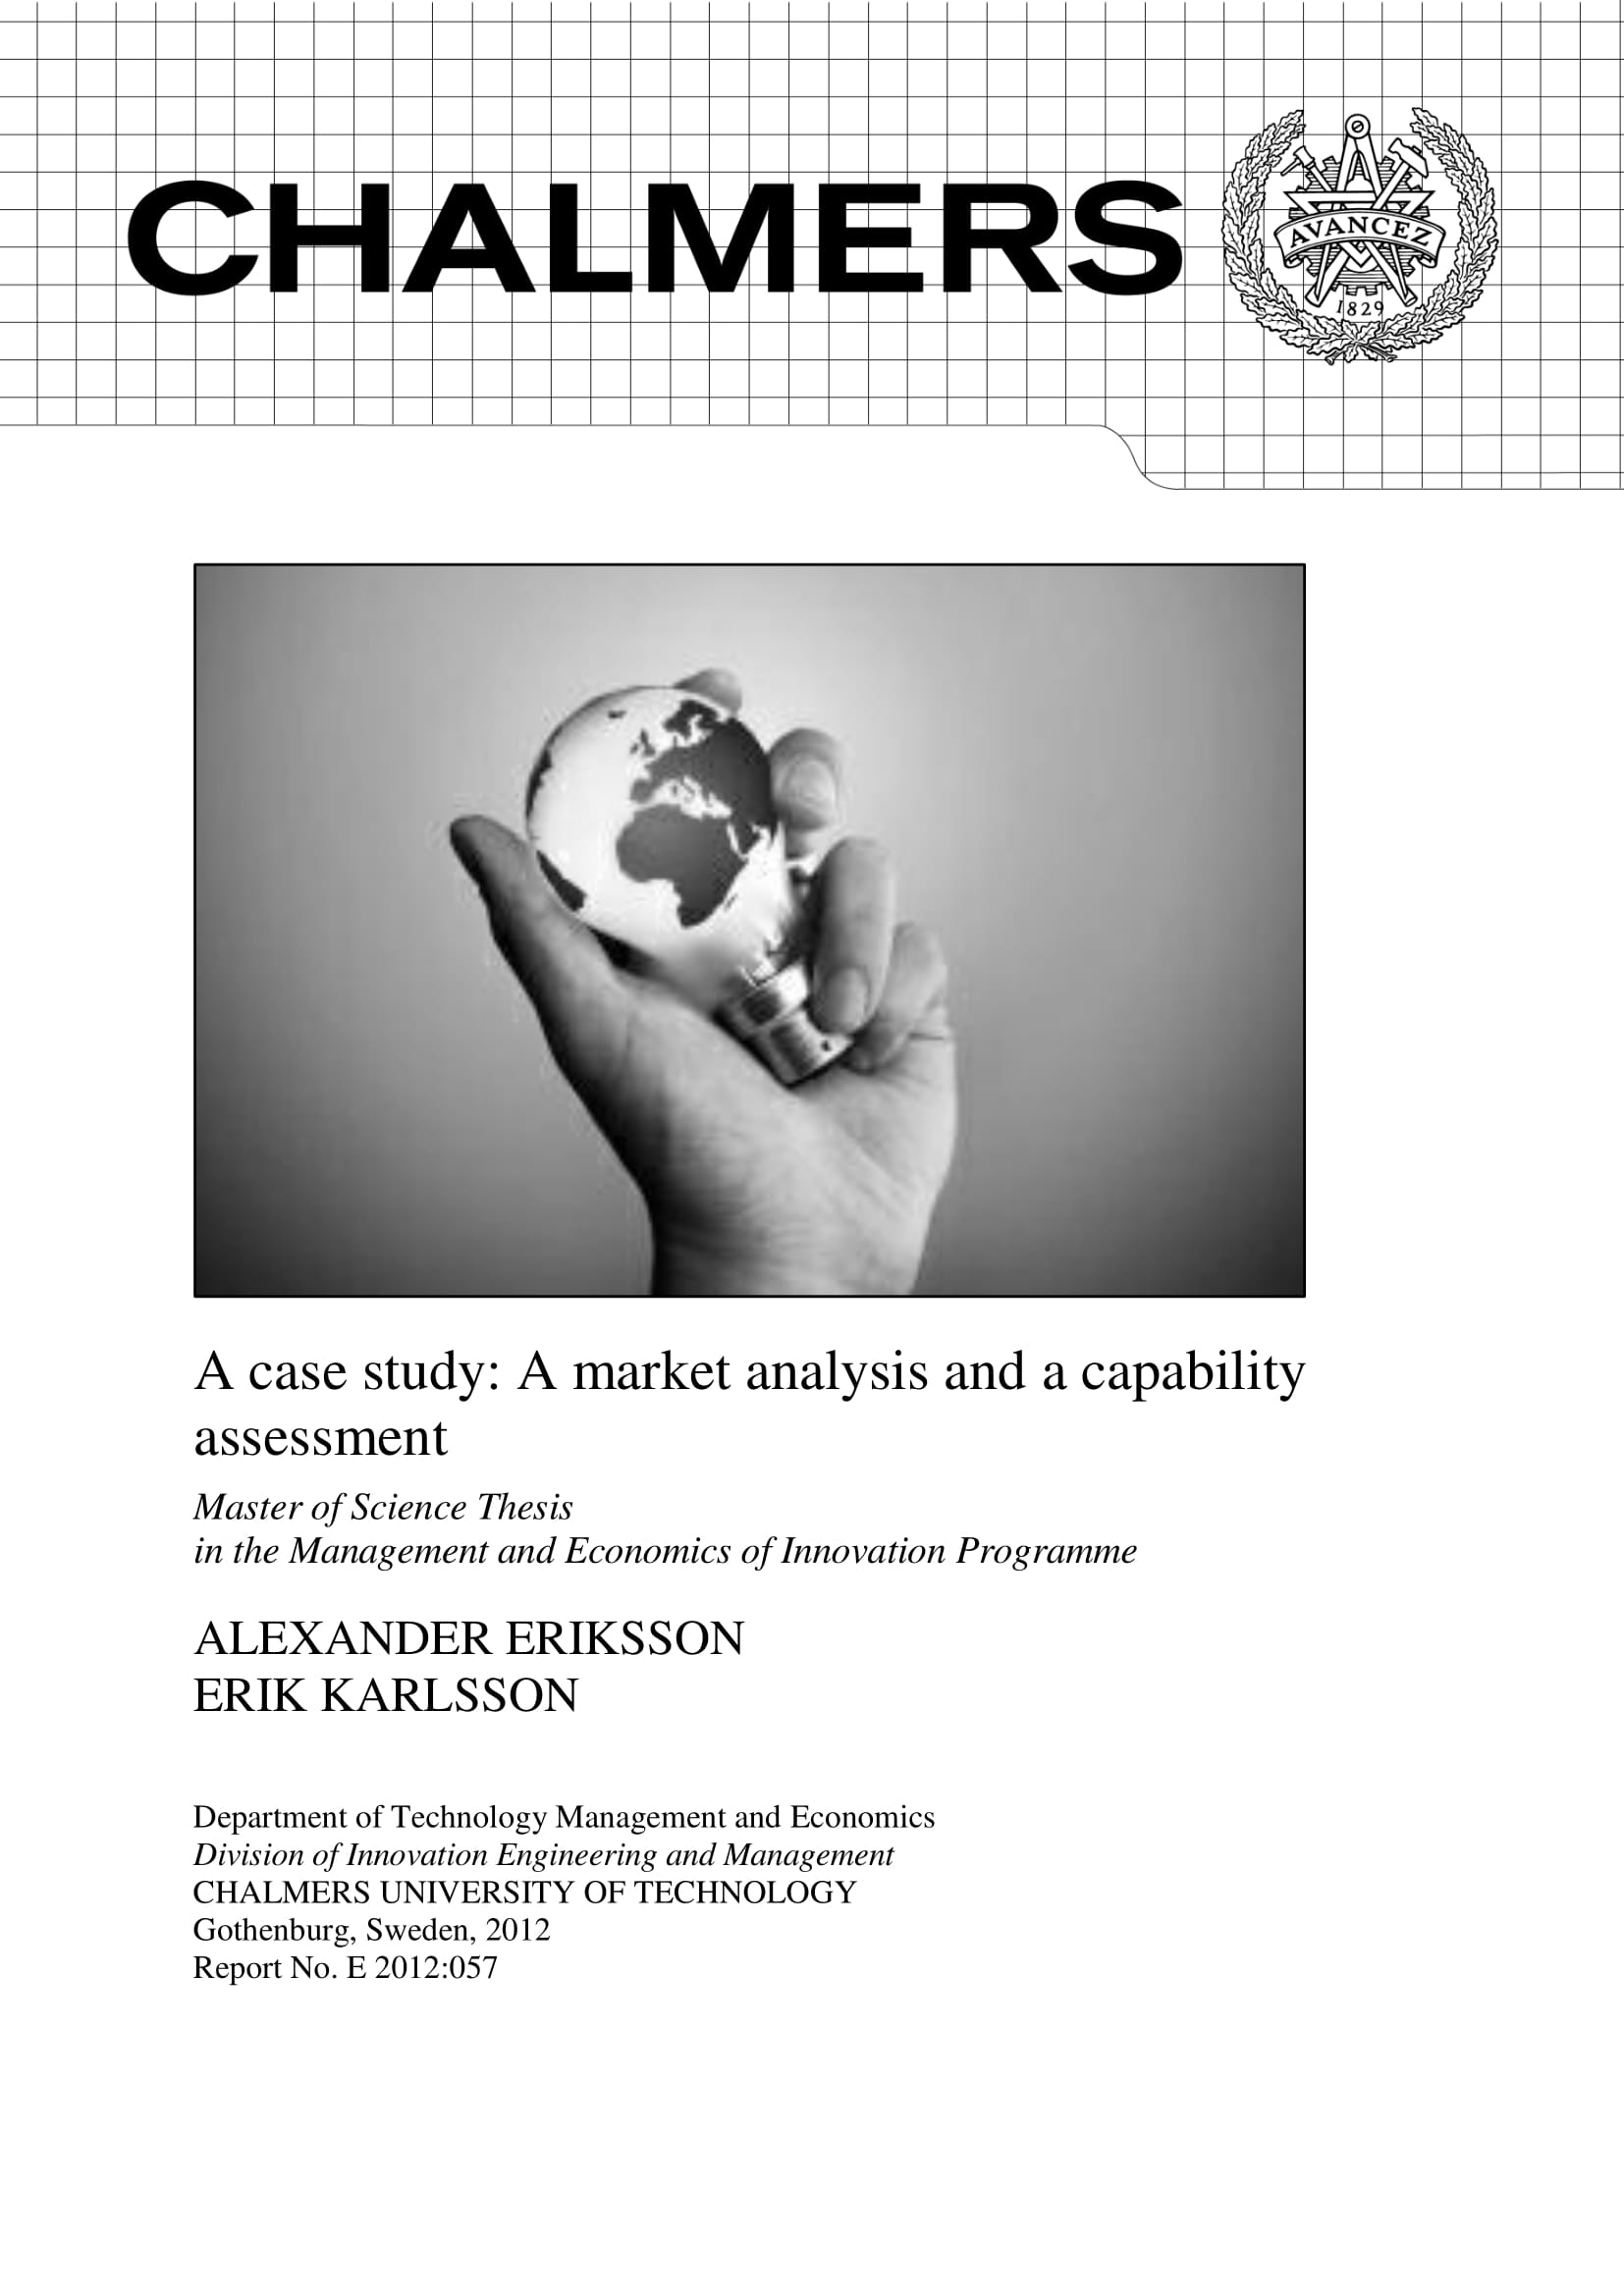 market analysis and capability assessments for bridging market gaps example 001